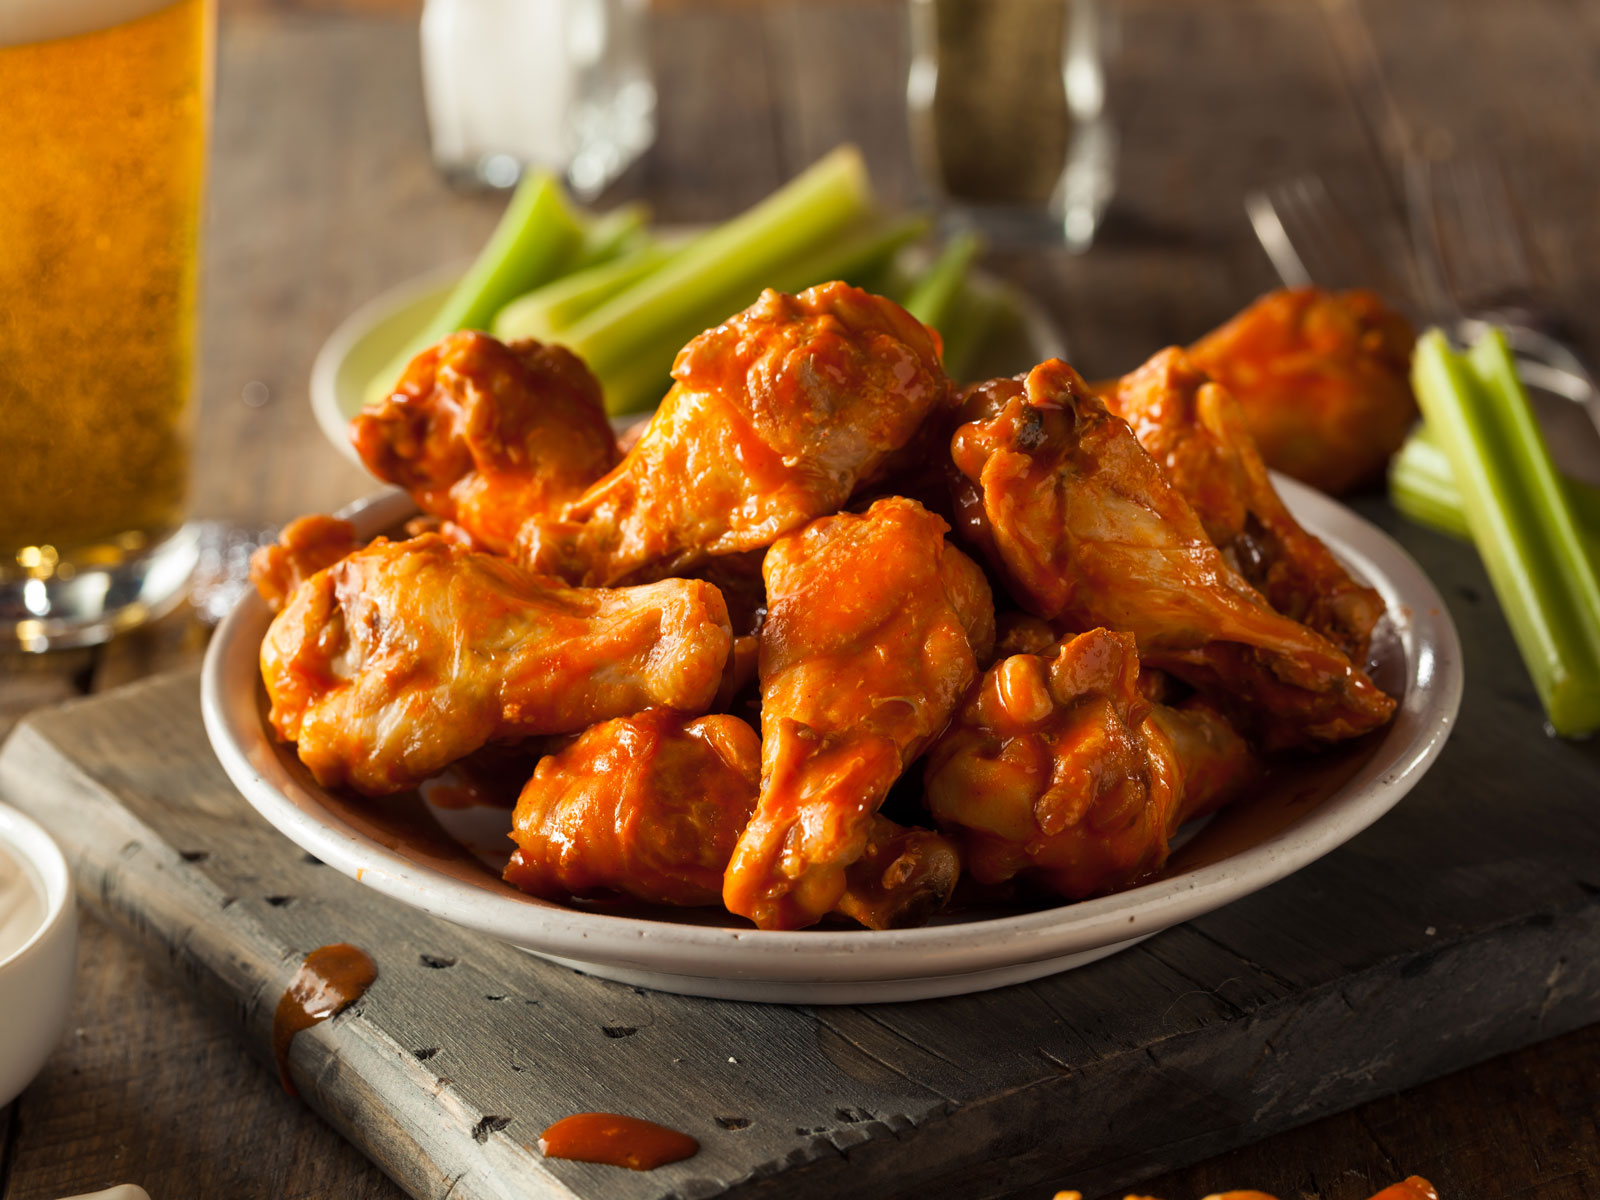 chicken-wings-super-bowl-FT-BLOG0119.jpg